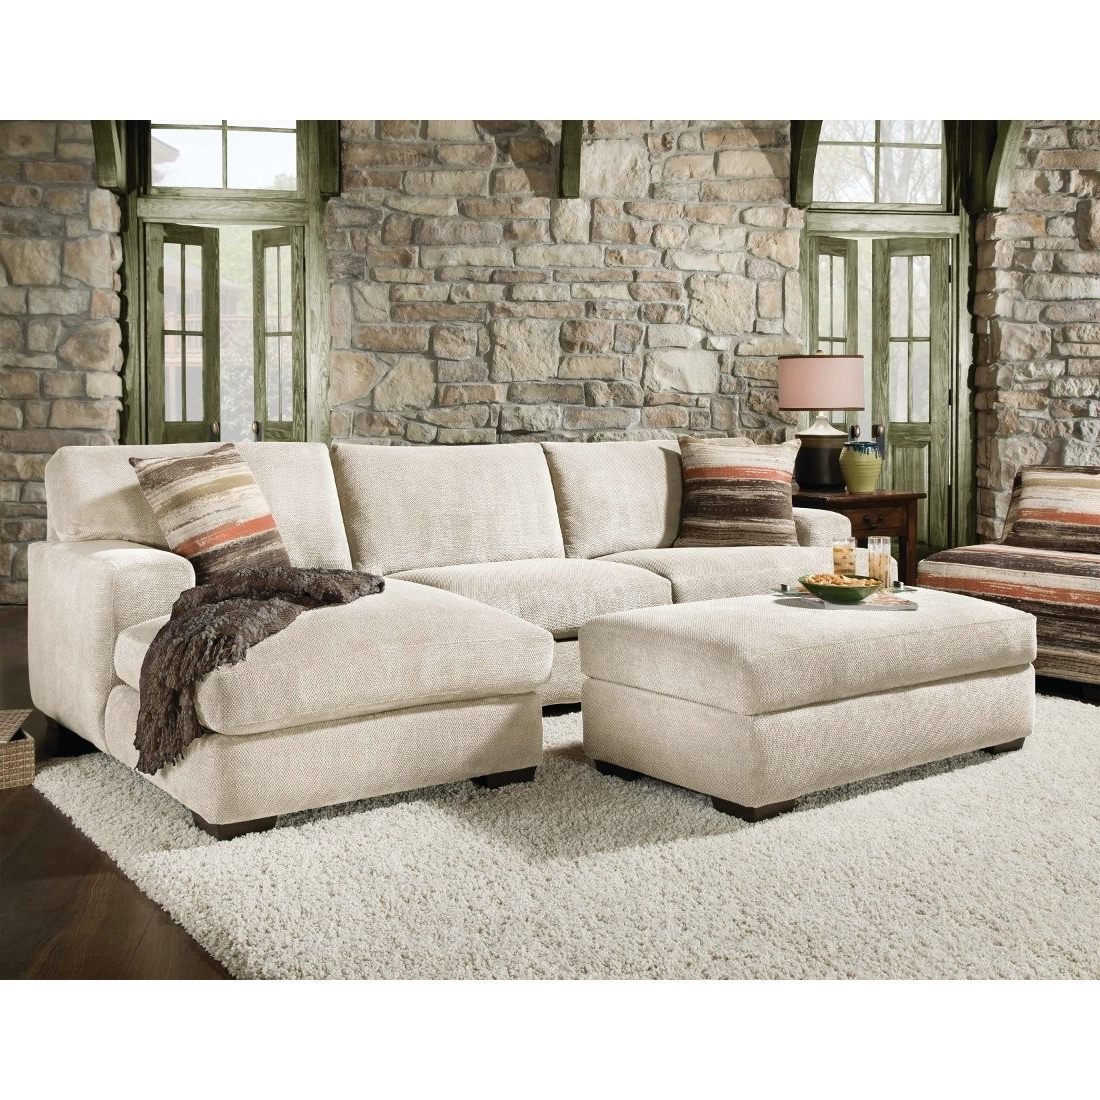 Most Current Sectional Sofa Design: Sectional Sofa With Chaise And Ottoman Regarding Sectional Sofas With Chaise And Ottoman (View 4 of 15)